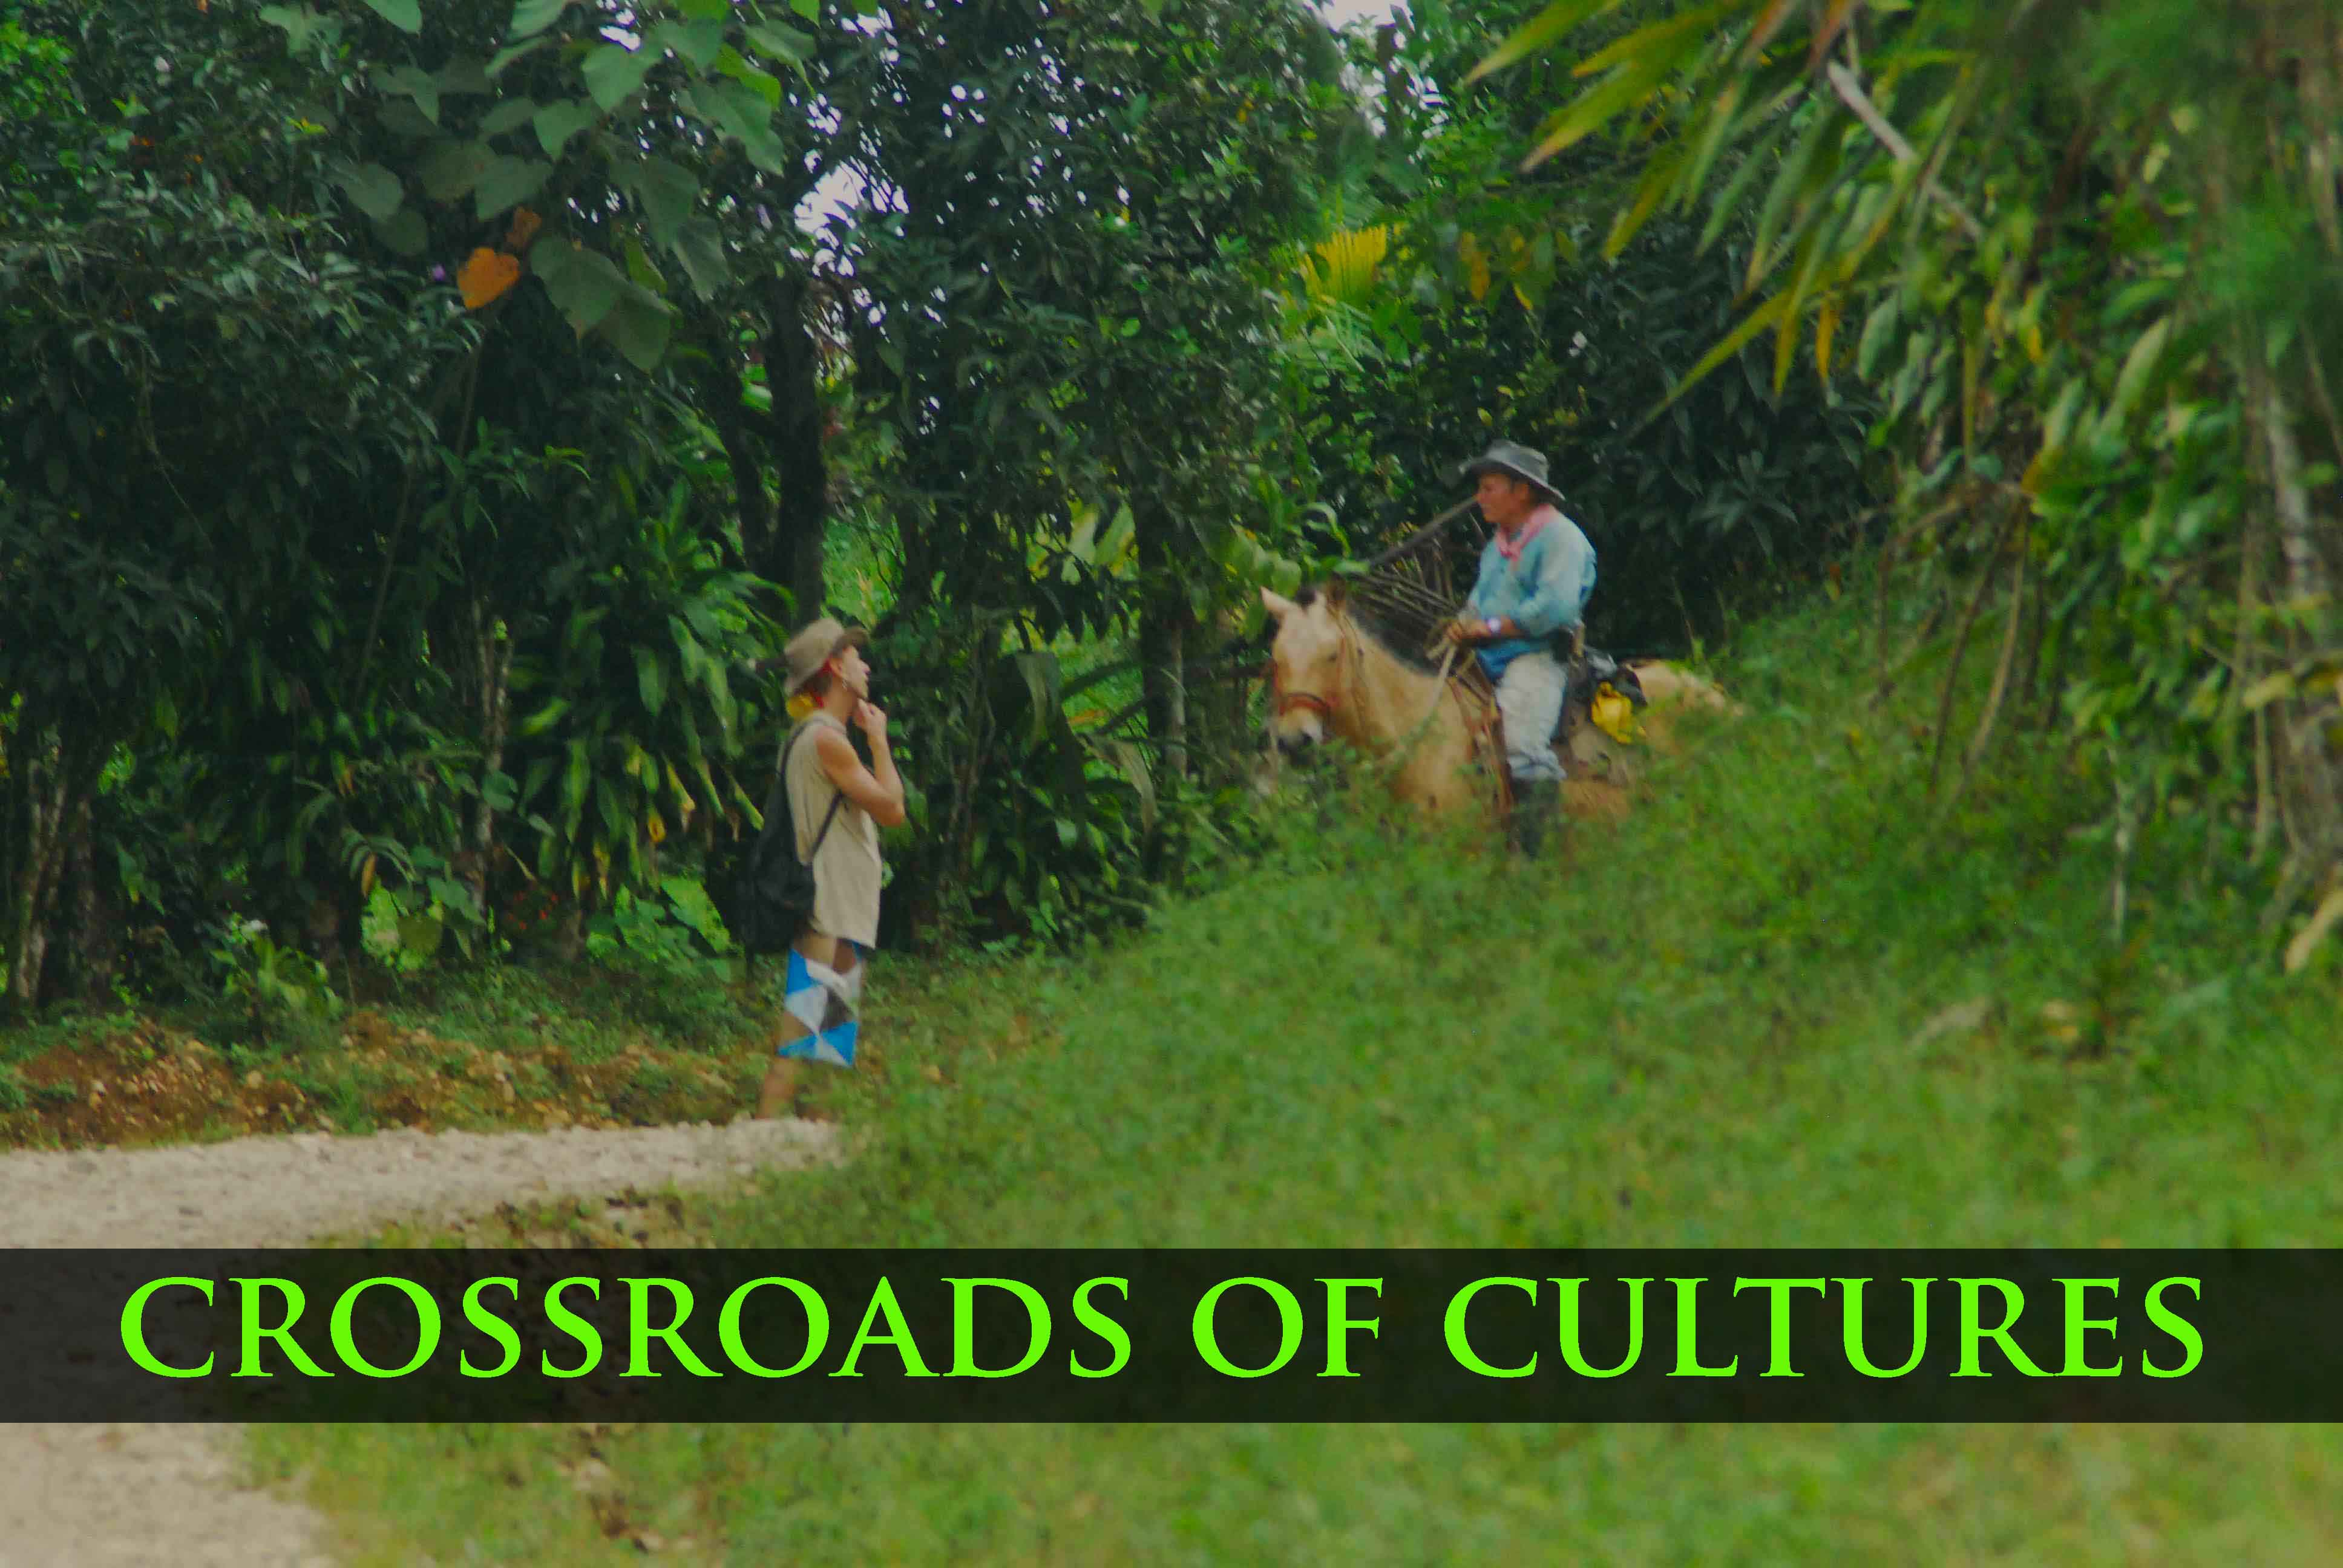 crossroads of cultures